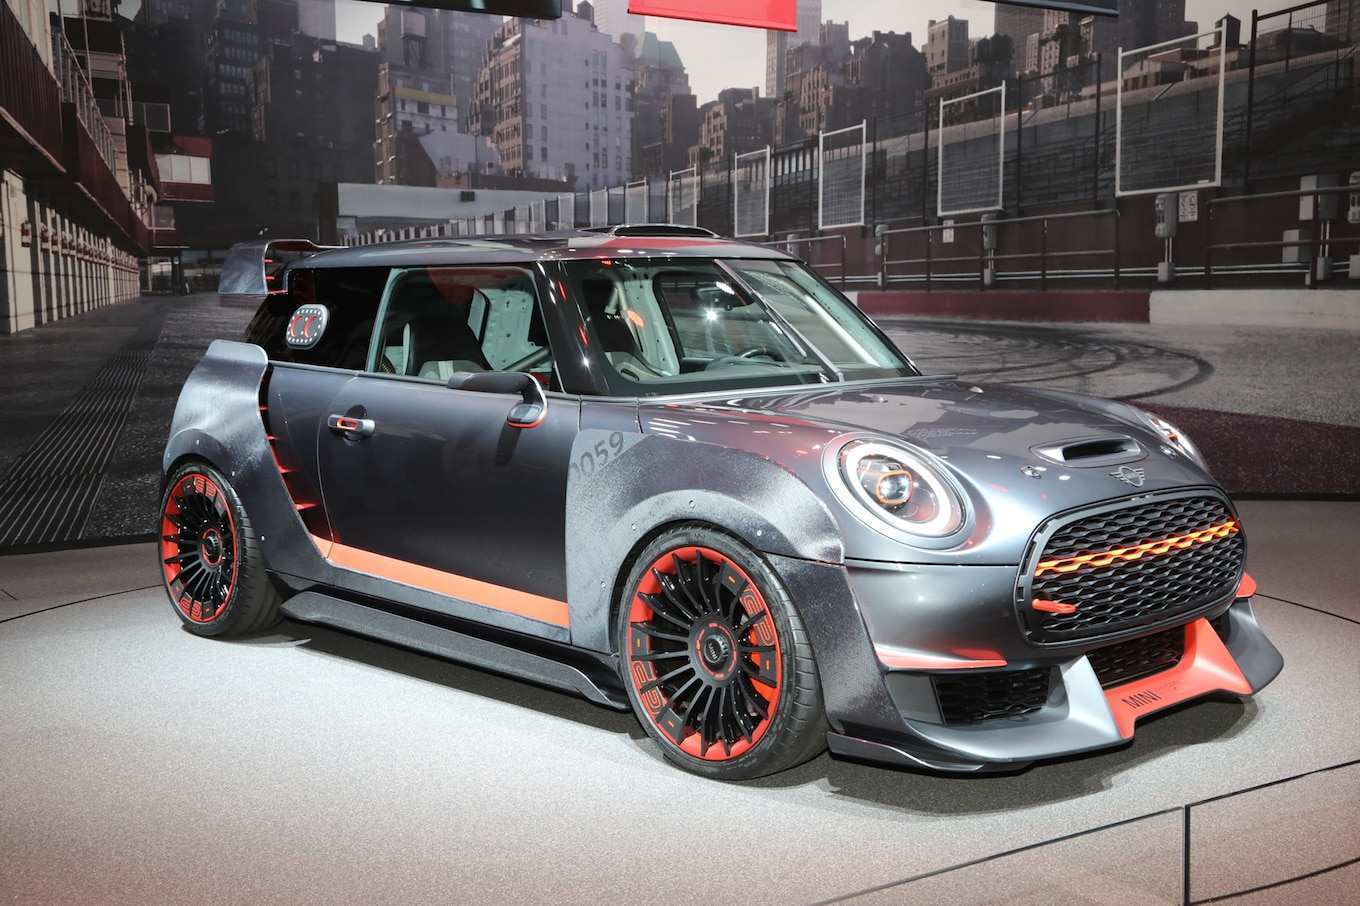 54 All New Mini Cabrio 2020 Redesign and Concept by Mini Cabrio 2020